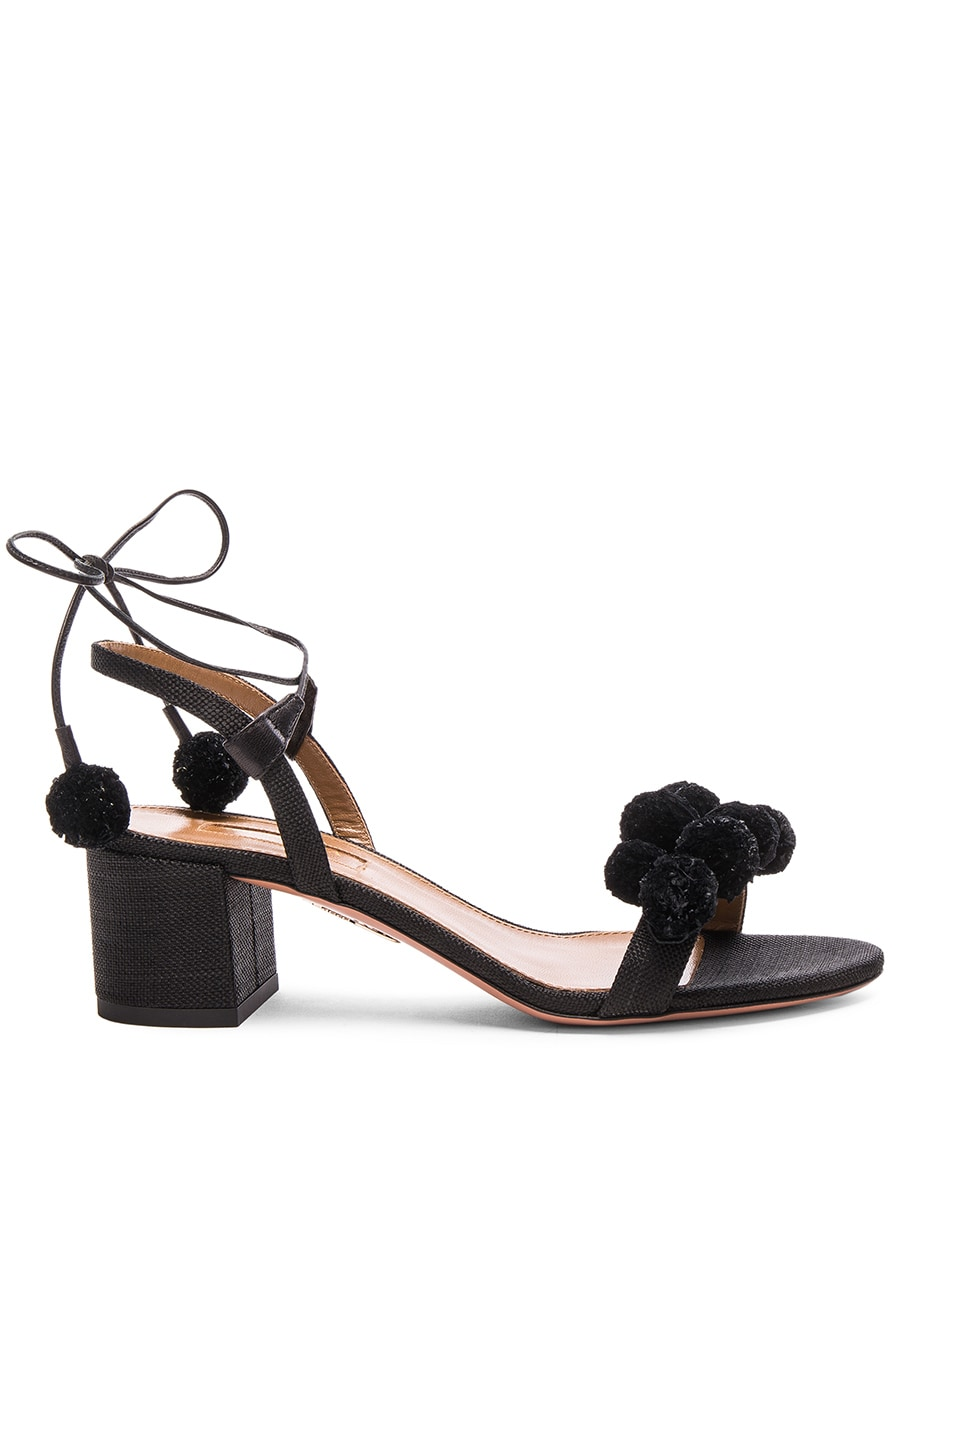 Image 1 of Aquazzura Pom Pom Sandals in Black